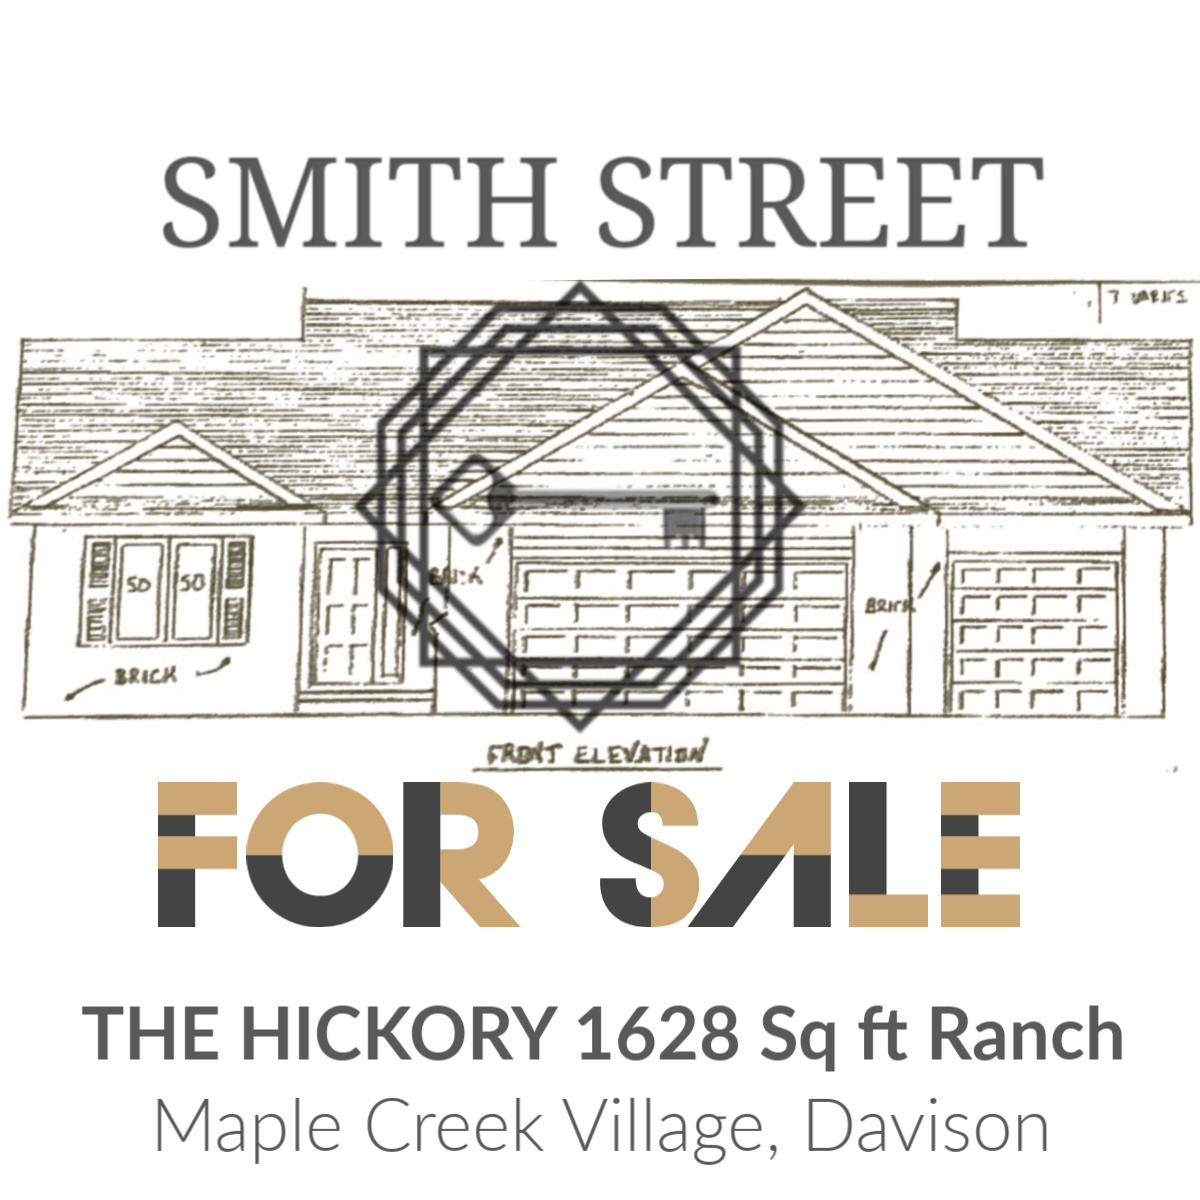 THE HICKORY - 1628 Square foot ranch